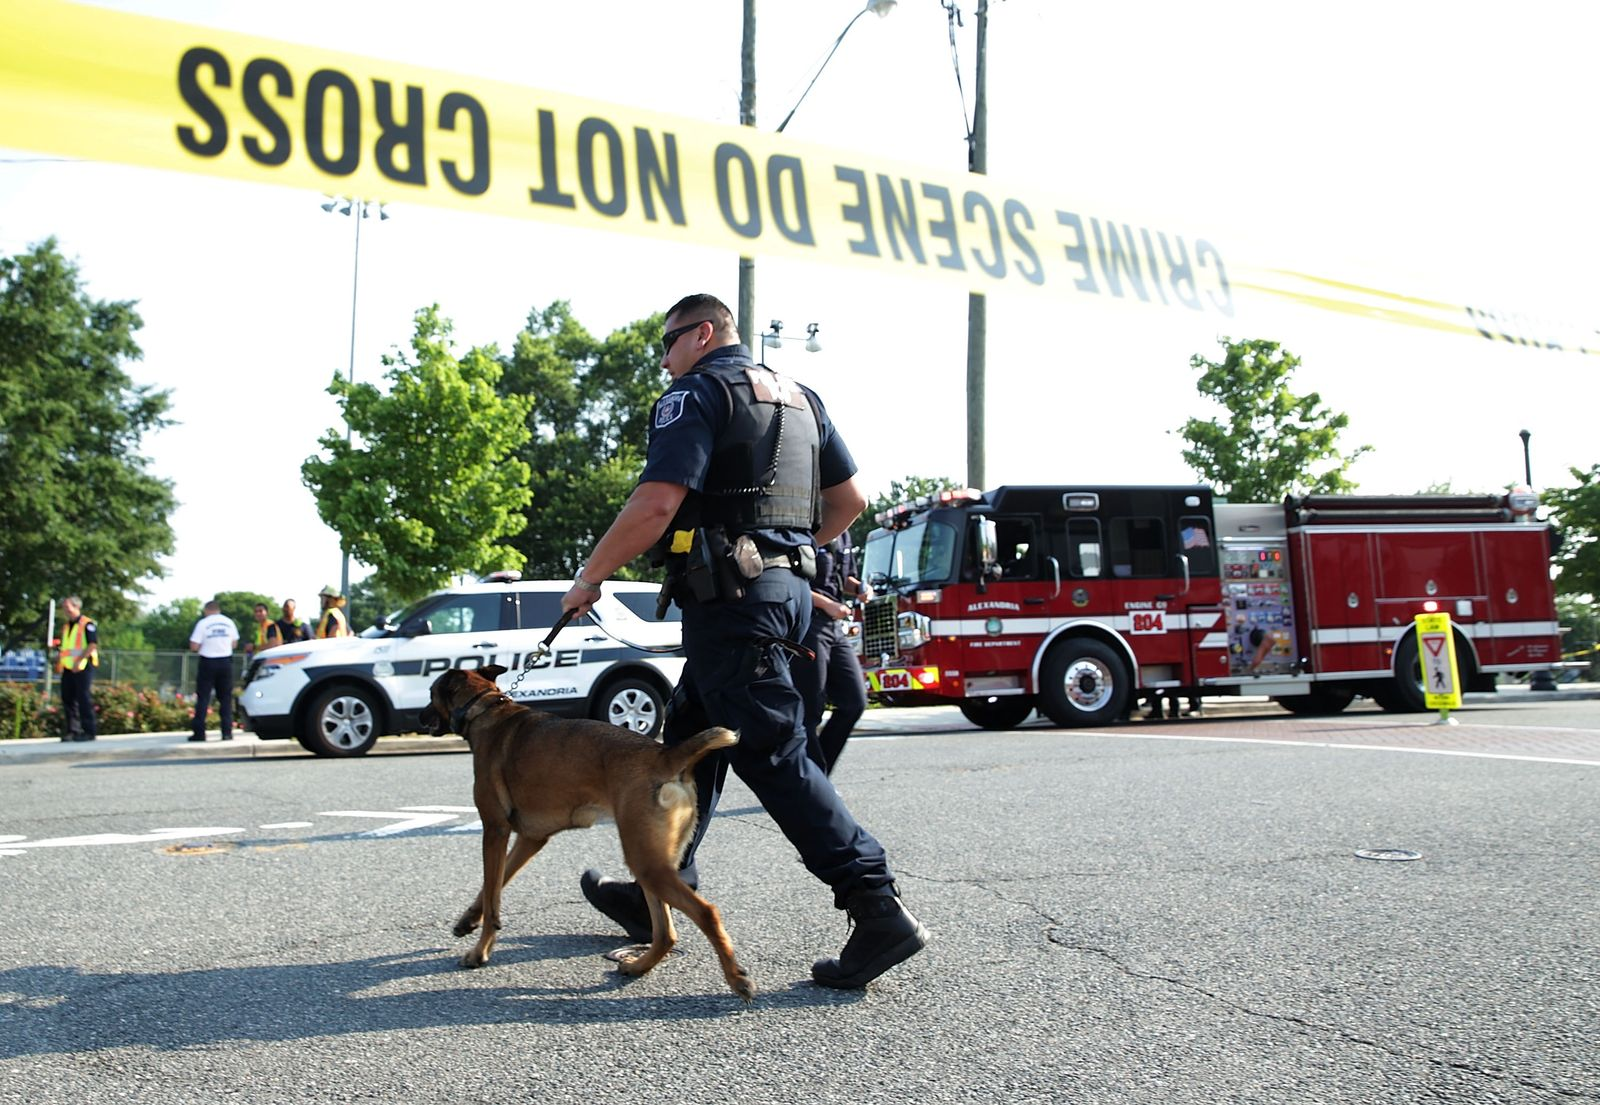 US-MULTIPLE-INJURIES-REPORTED-FROM-SHOOTING-AT-FIELD-USED-FOR-CO